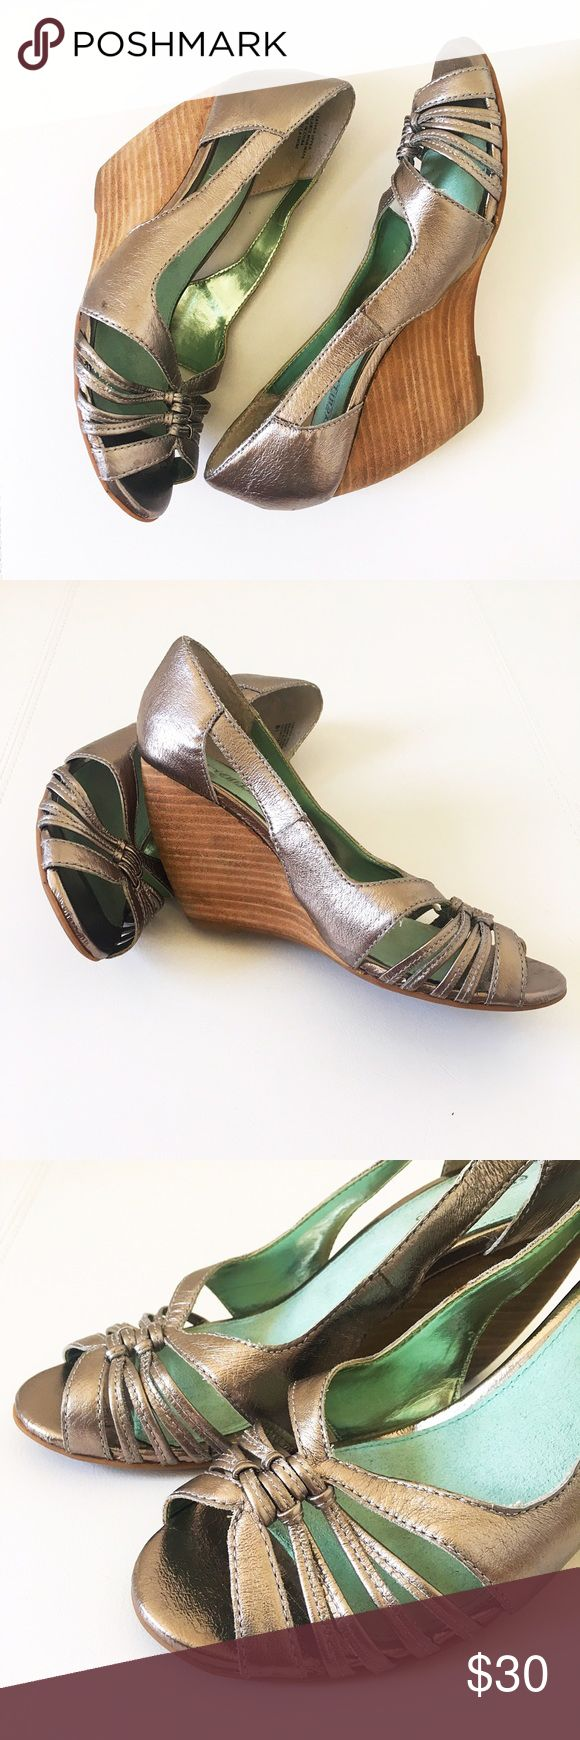 Seychelles Metallic Leather Wedges Wooden Heel So fun and sexy and very comfy. These are used condition but really great shape! The right inside of the heel has a small spot as you can see in last pic. Seychelles Shoes Wedges